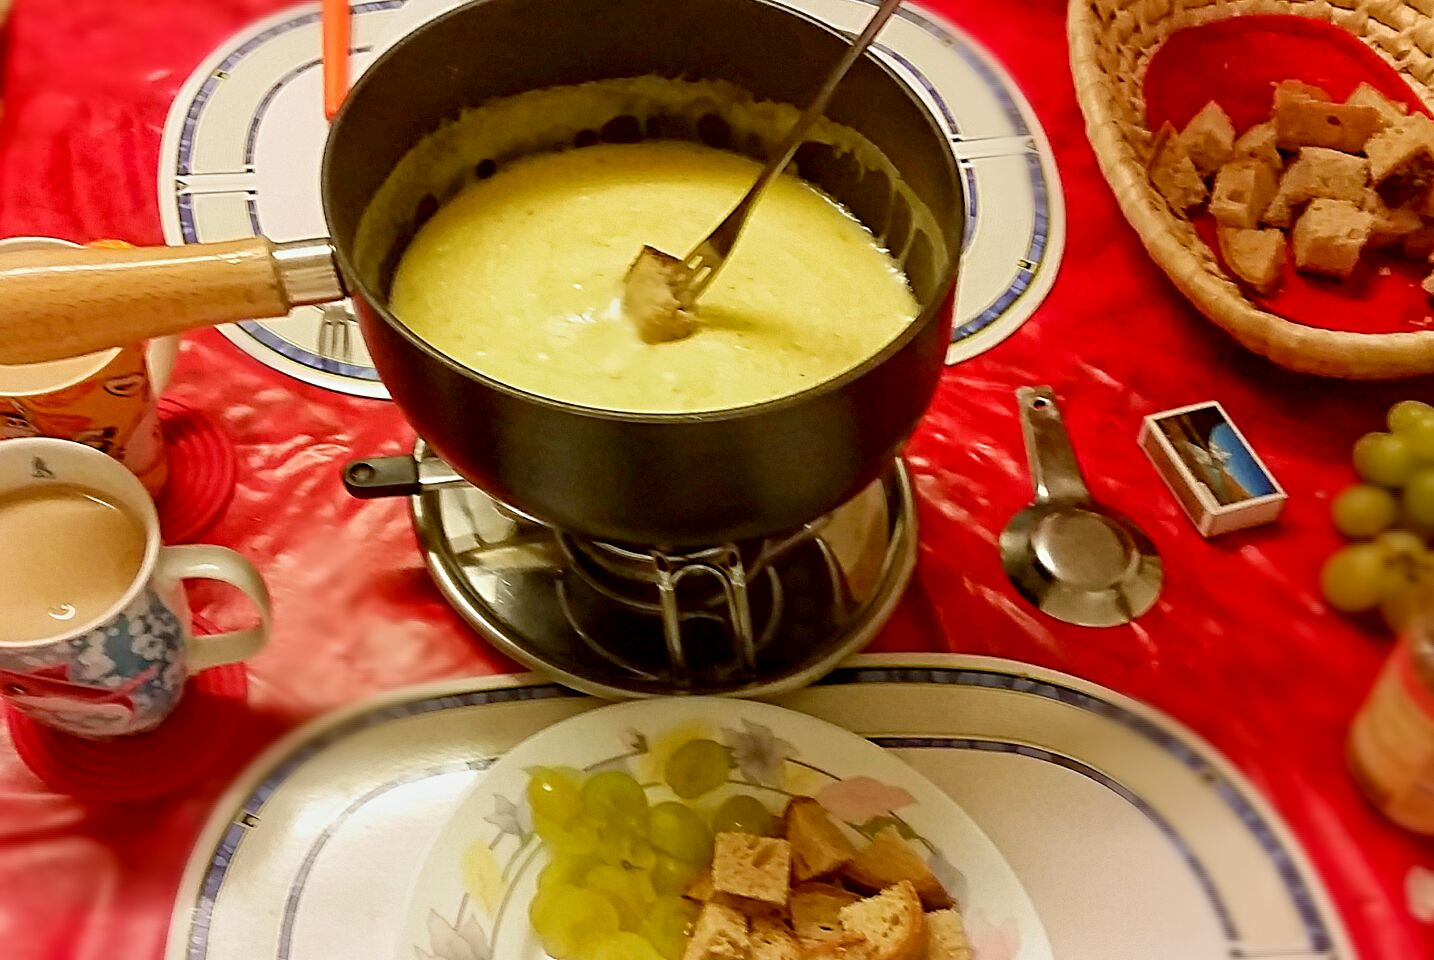 It is getting colder in Switzerland! Cheesfondue time 😄 ❤ Fondue Moitié-Moitié ❤   #Cheesfondue #Swiss kitchen